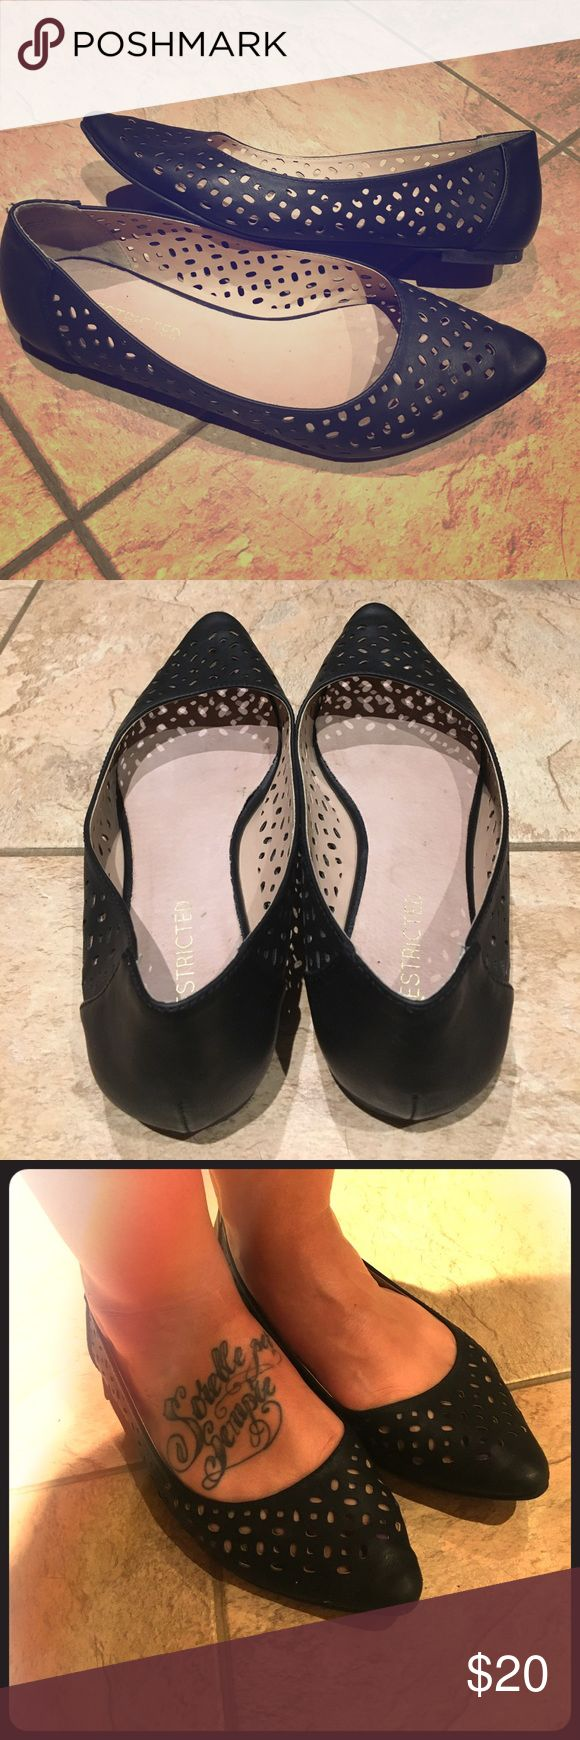 Restricted cut out flats Black leather cut put flats. Perfect with any outfit. Cute and comfortable. Minimal wear! Restricted Shoes Flats & Loafers